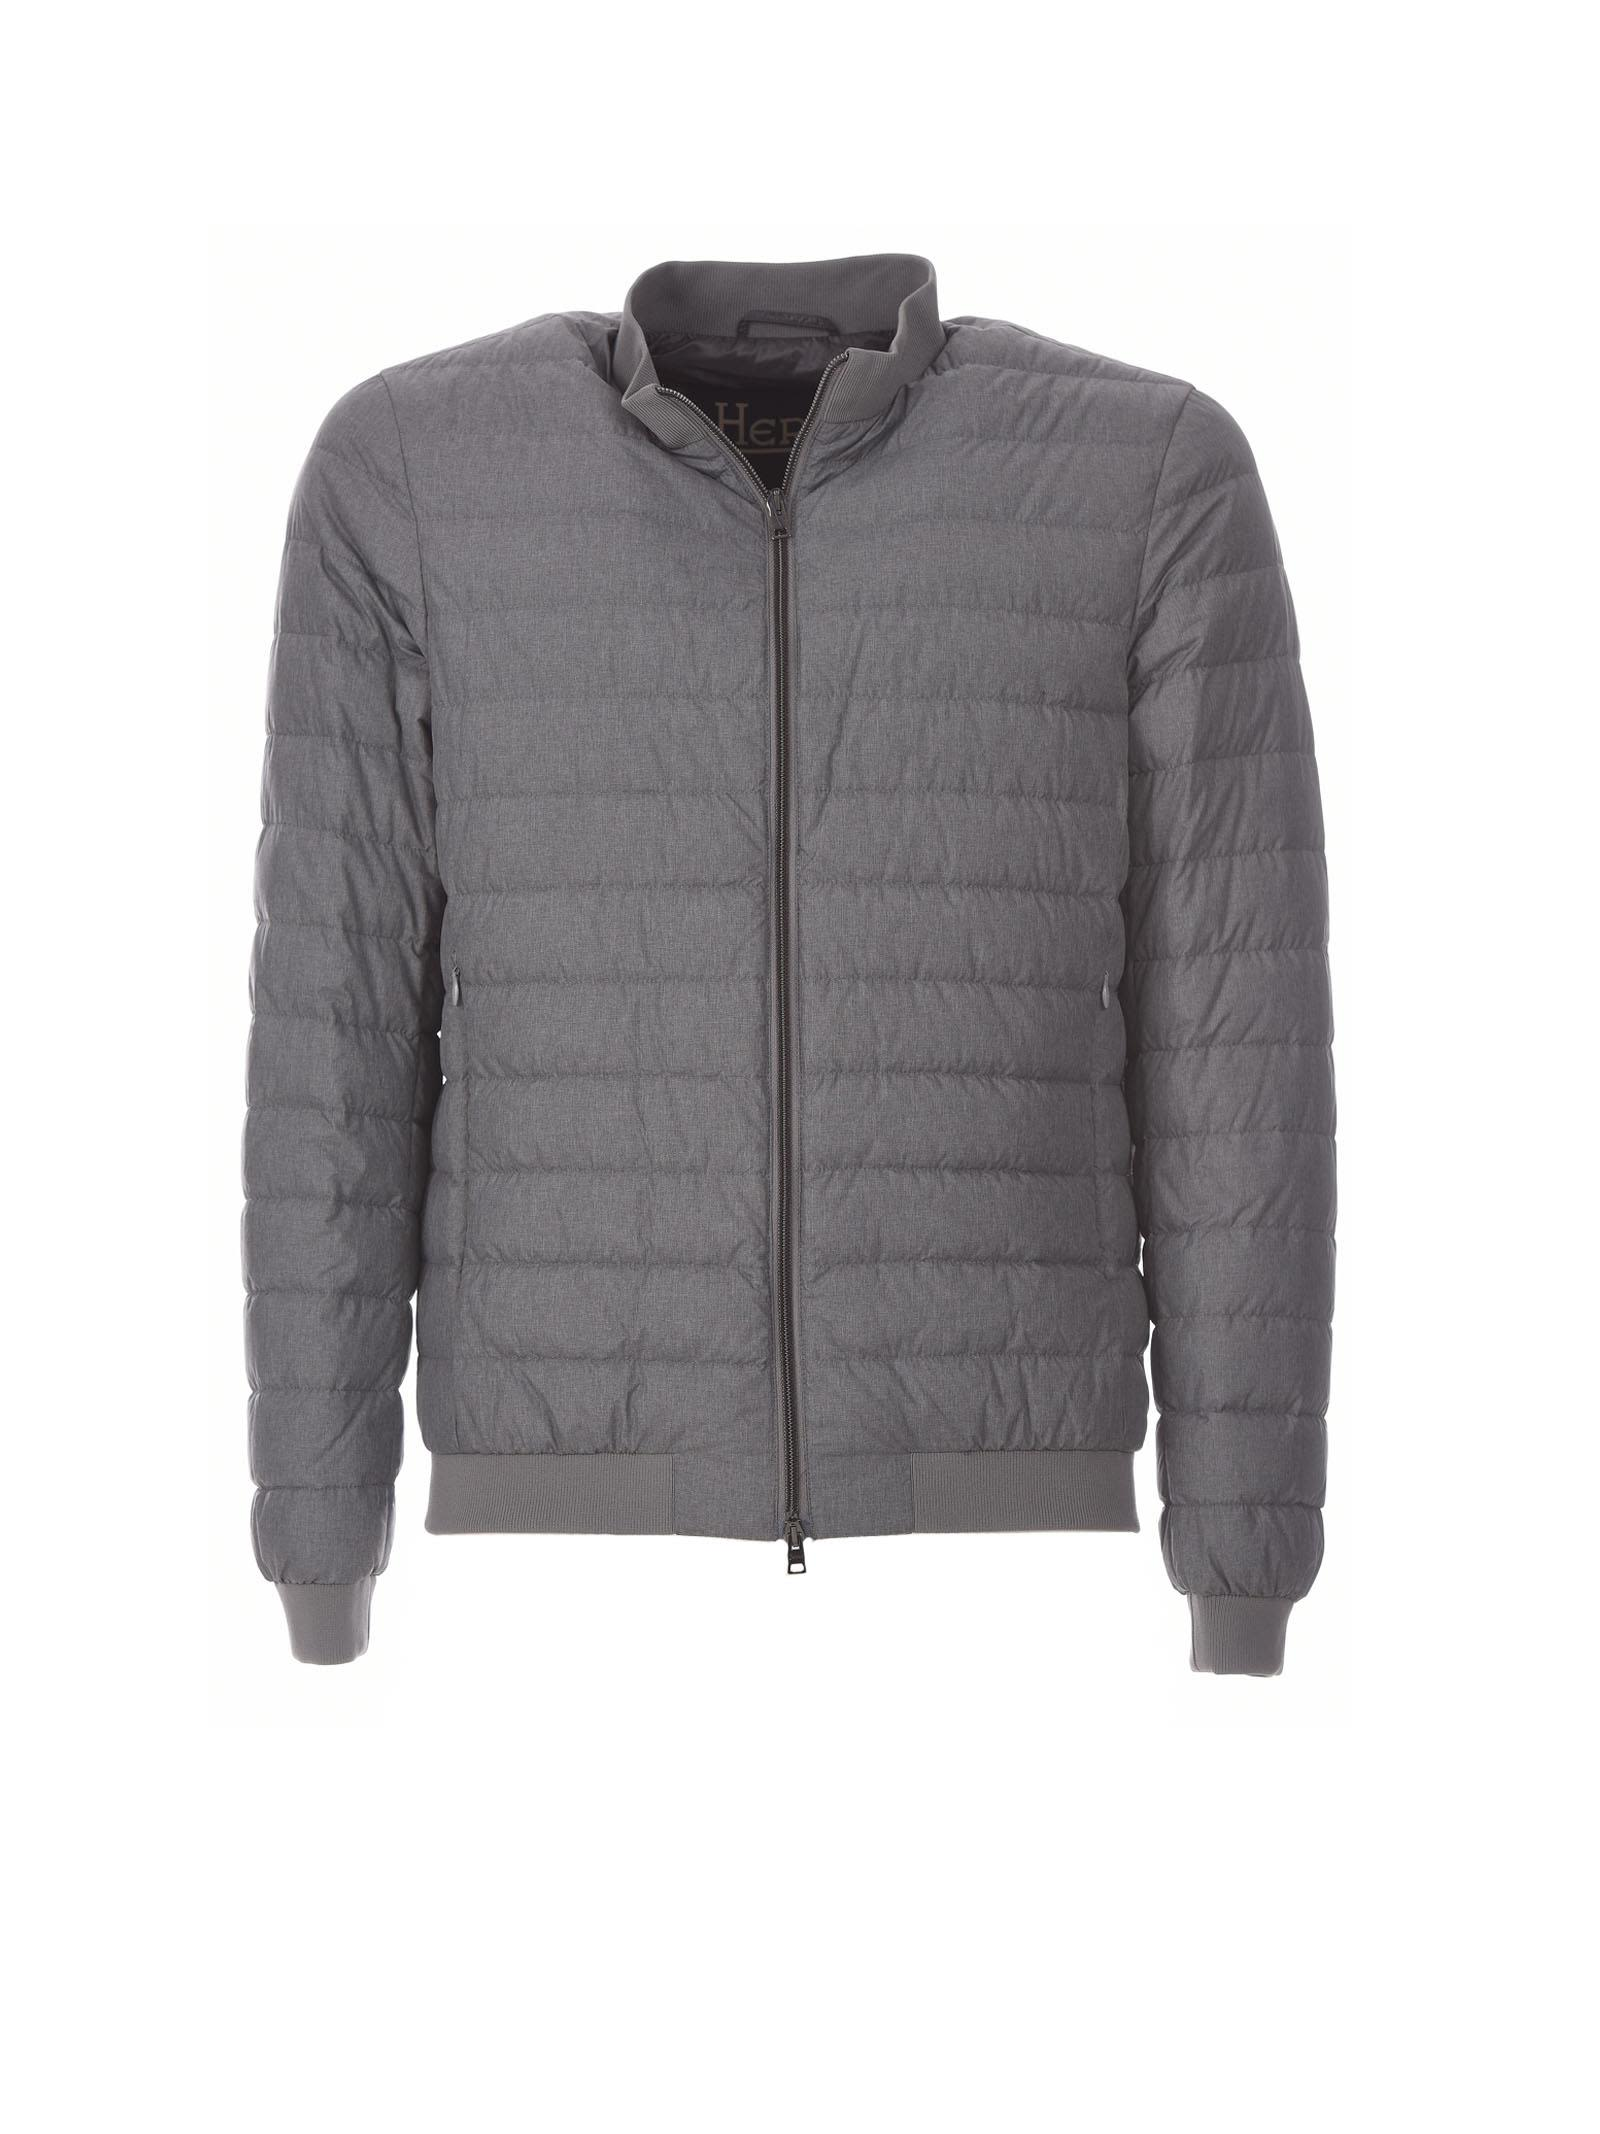 Herno Grey Padded Bomber Jacket